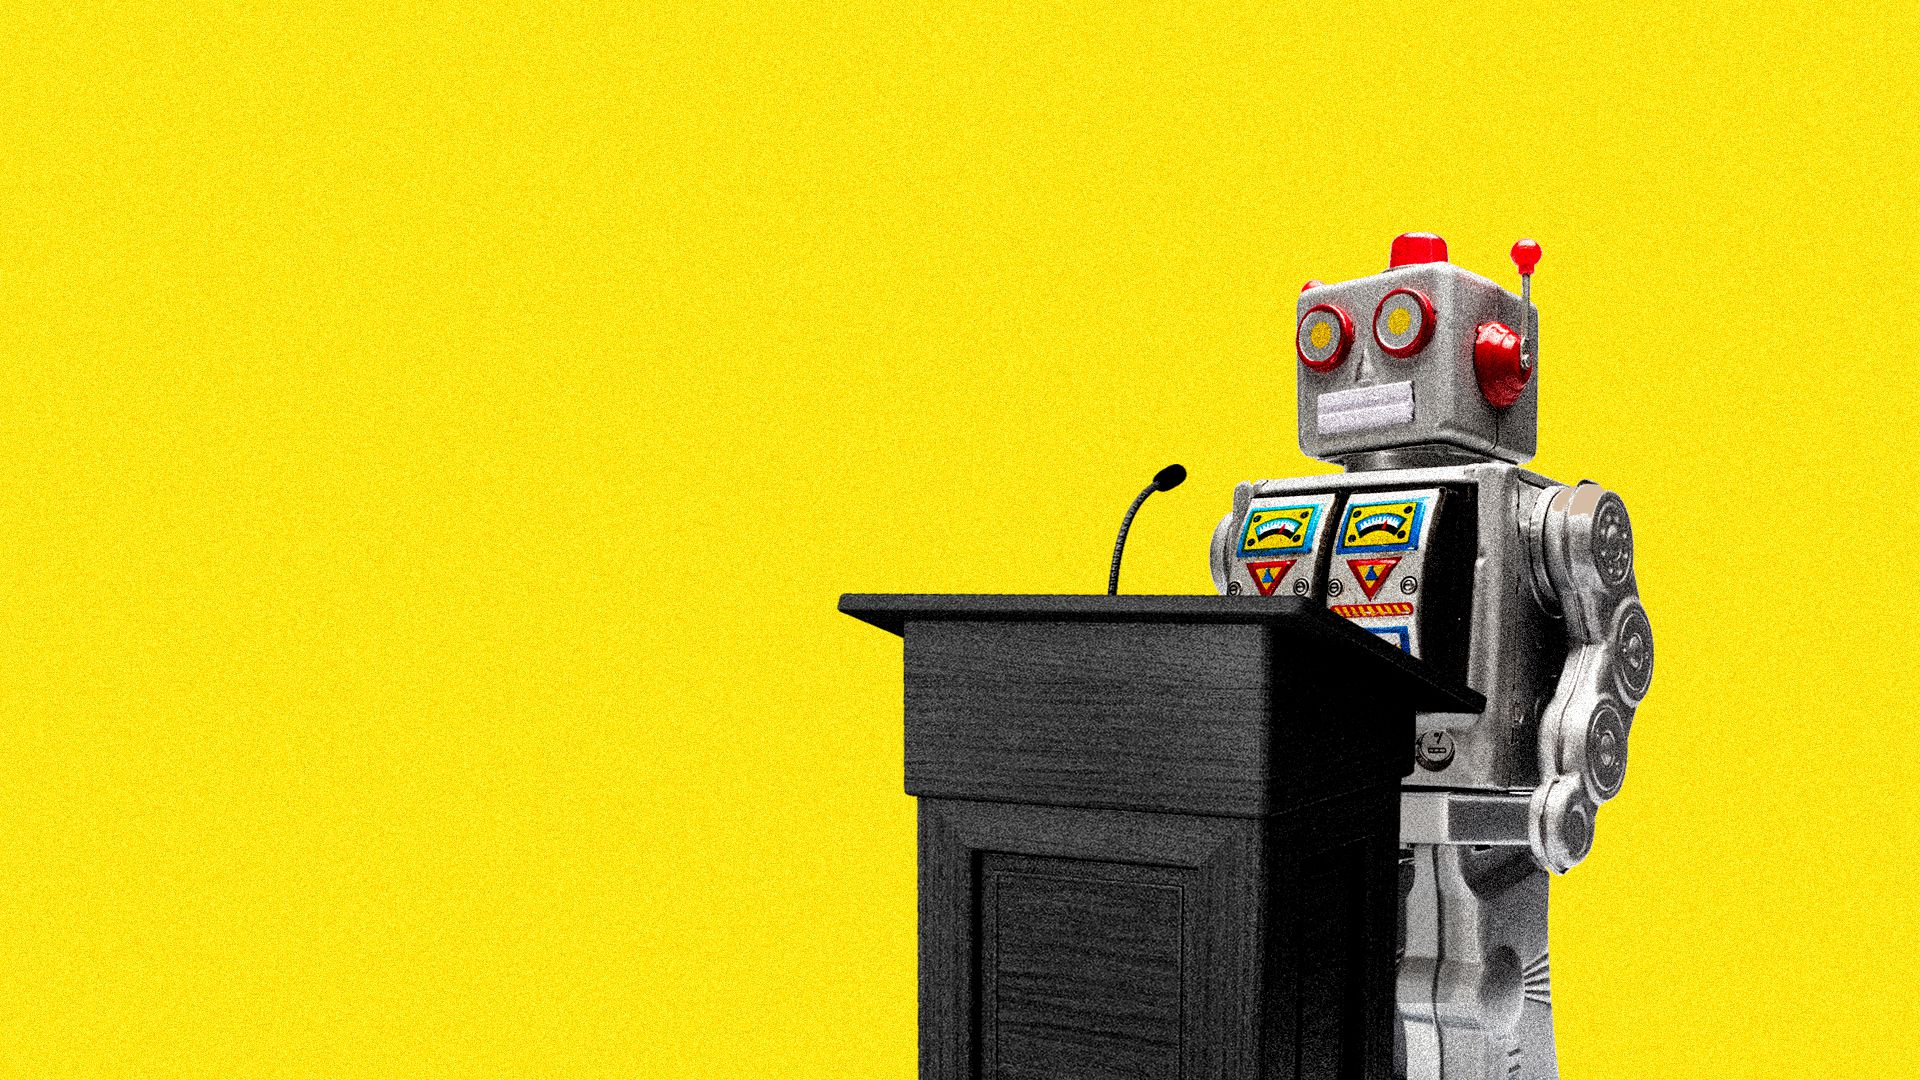 A robot stands behind a podium